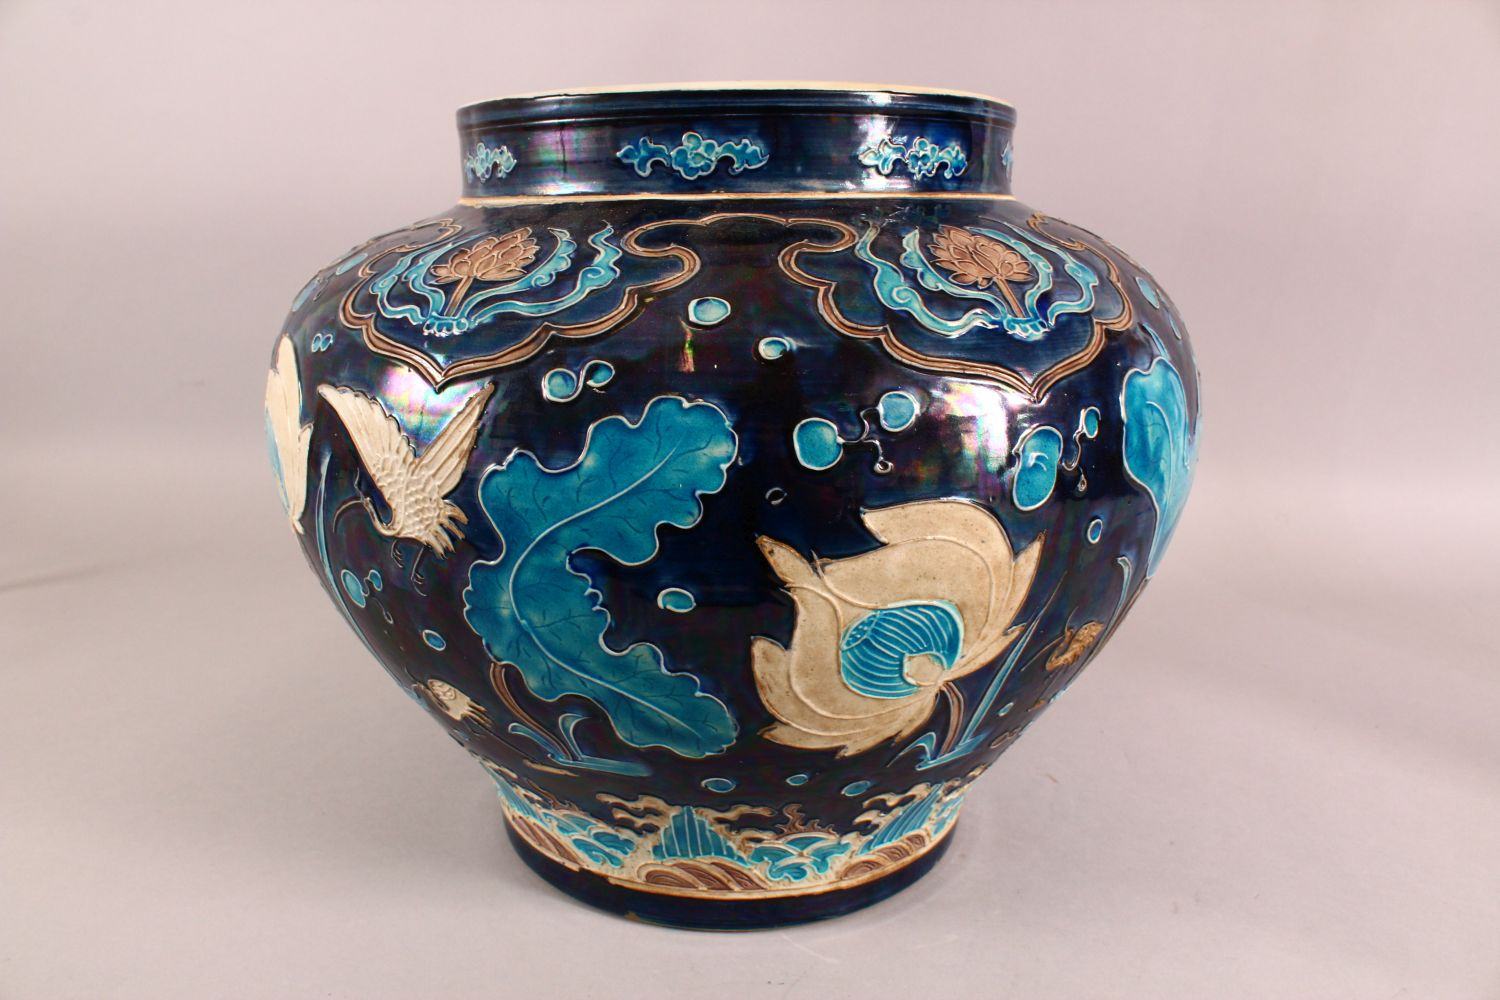 A LARGE CHINESE FAHUHA VASE, decorated with relief linework depicting lotus, lily pads and egrets - Image 3 of 7